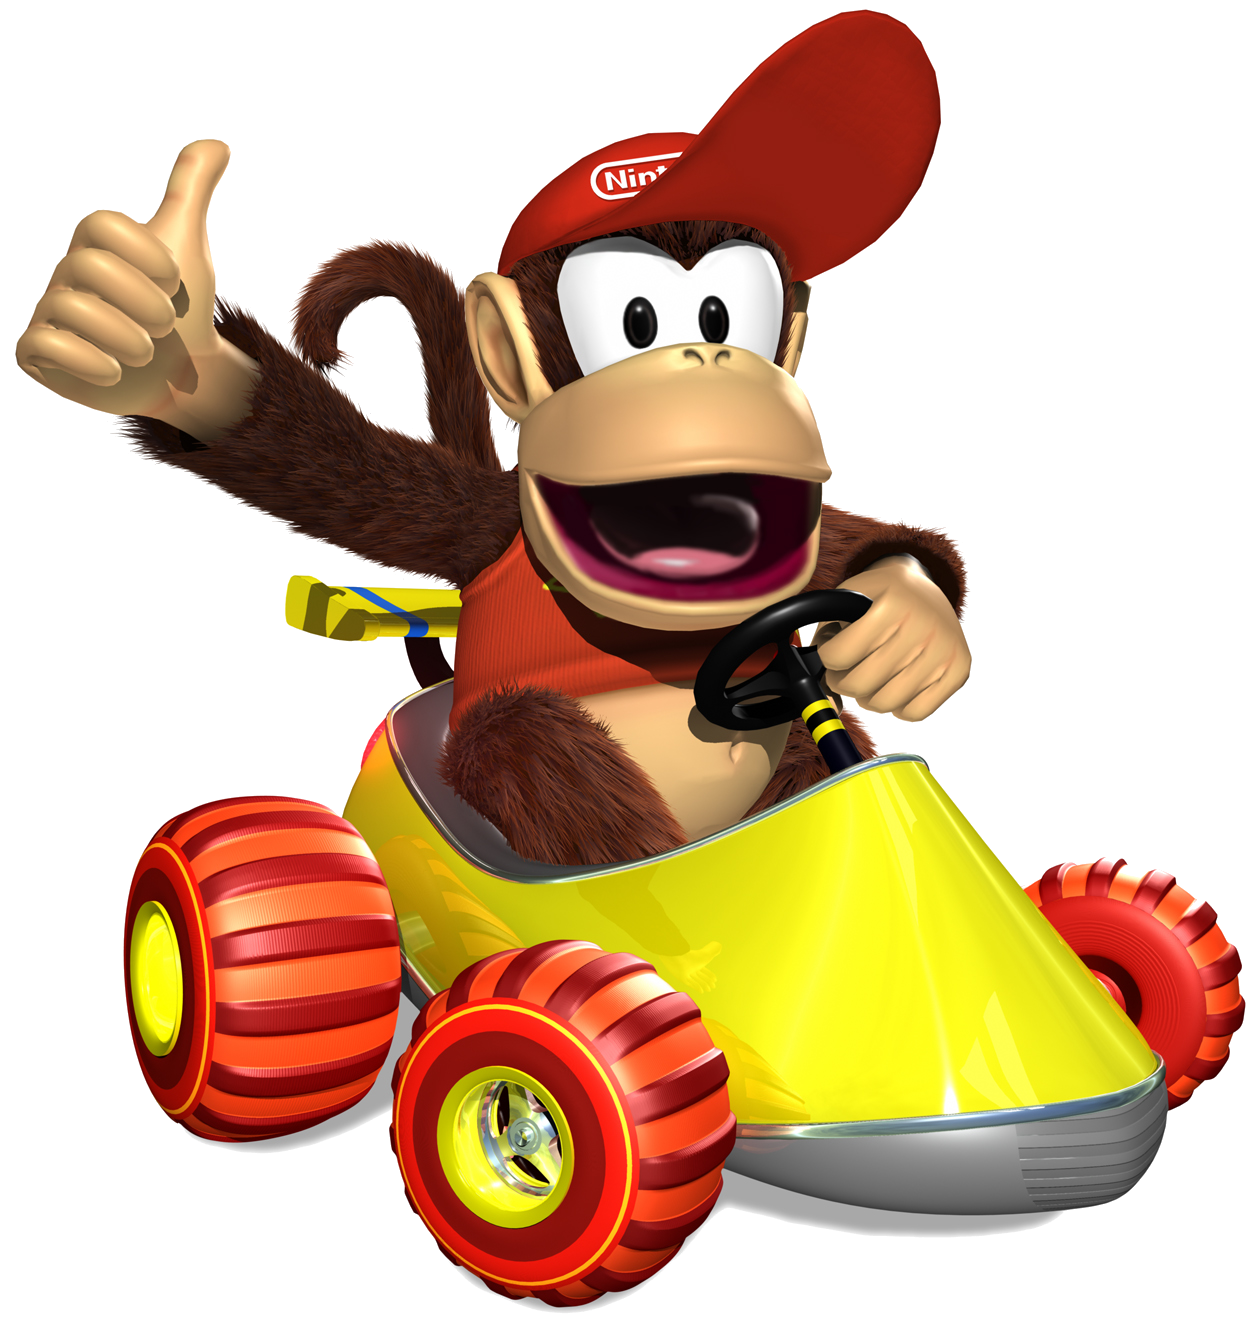 Toy Kart Wii Kong Mario Diddy Racing PNG Image